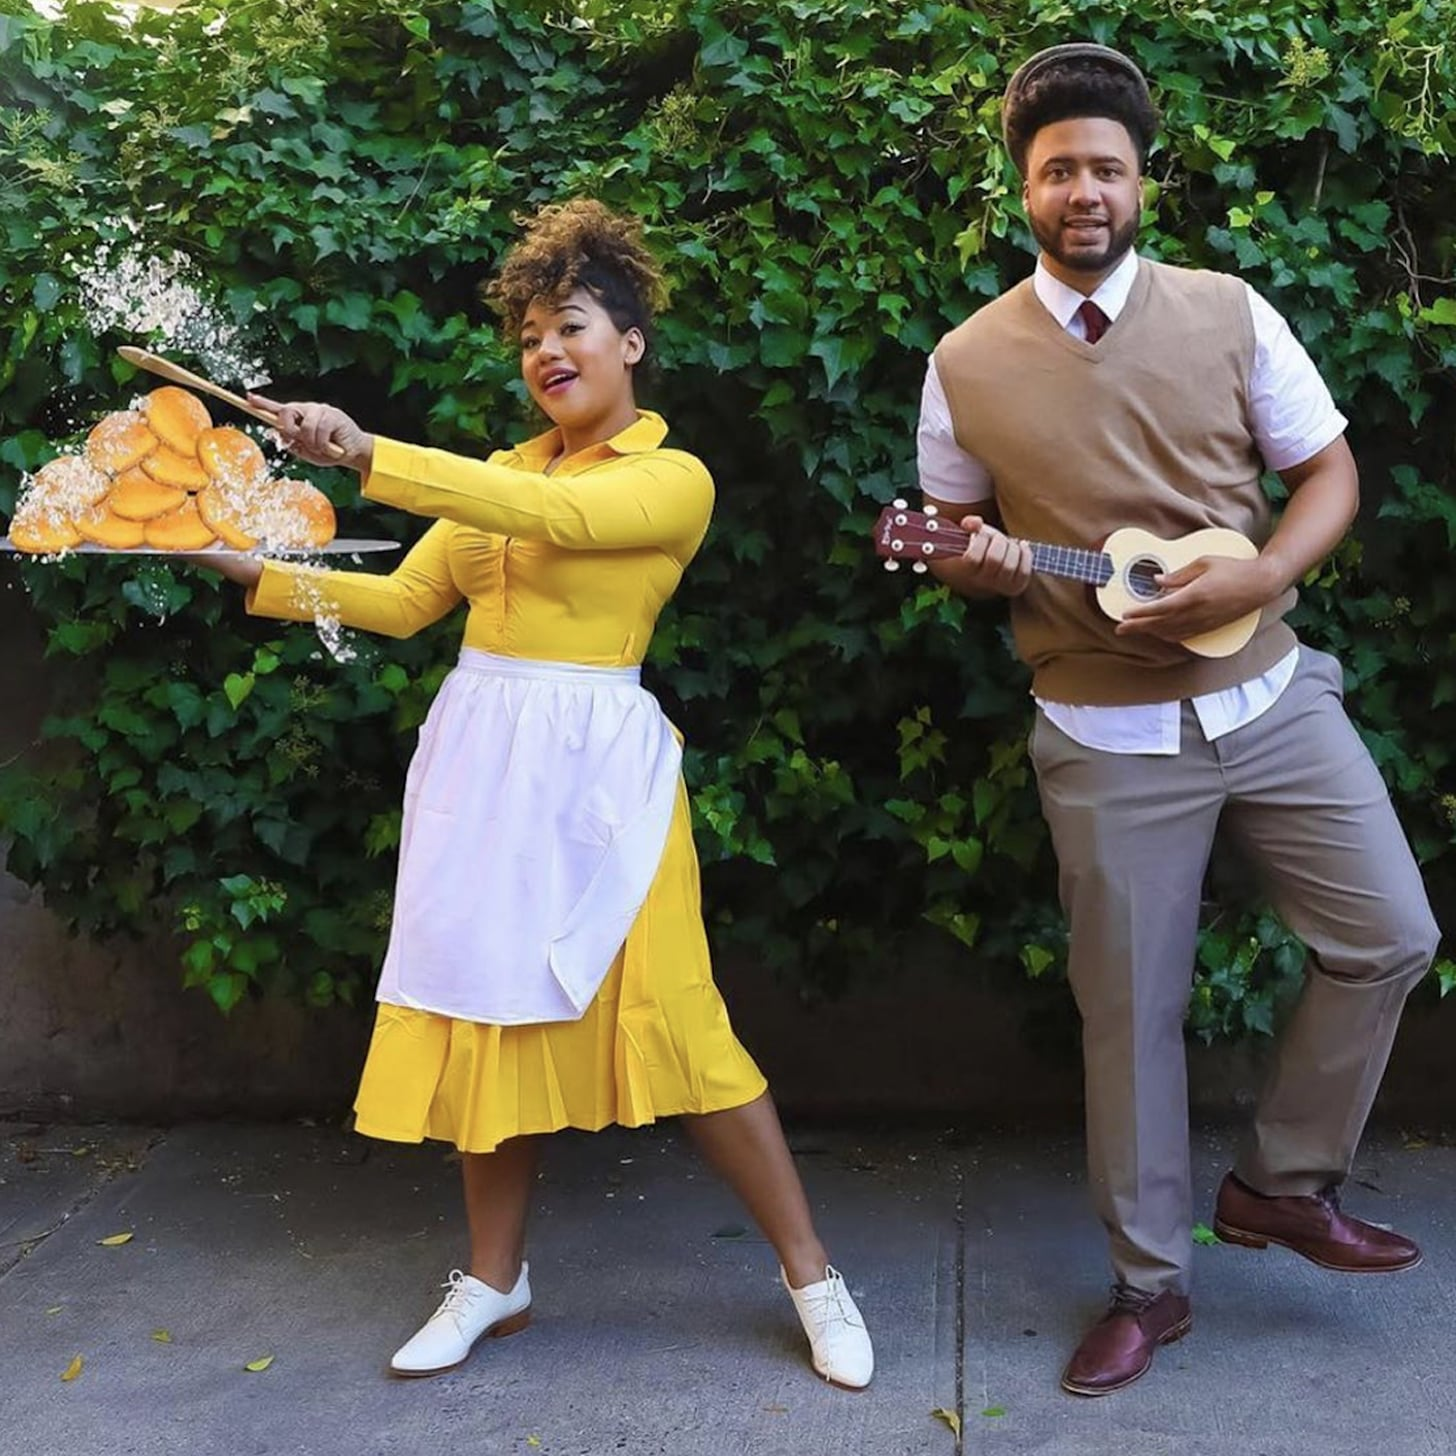 Do It Yourself Halloween Costumes For Couples.Cheap Diy Couples Halloween Costumes Popsugar Smart Living